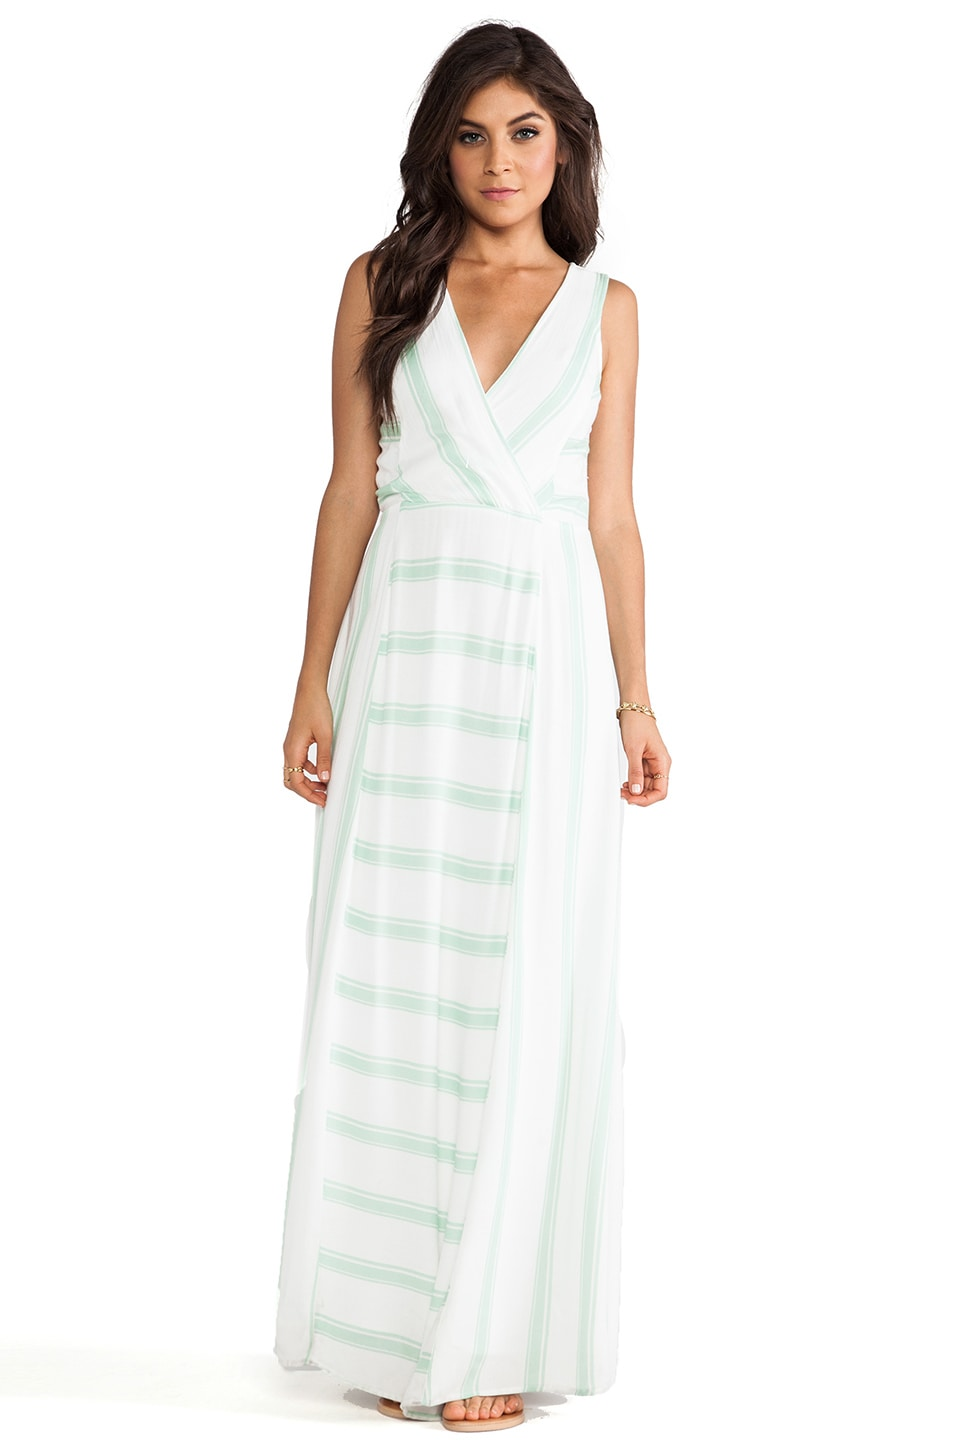 Ella Moss Anabel Maxi Dress in Julep